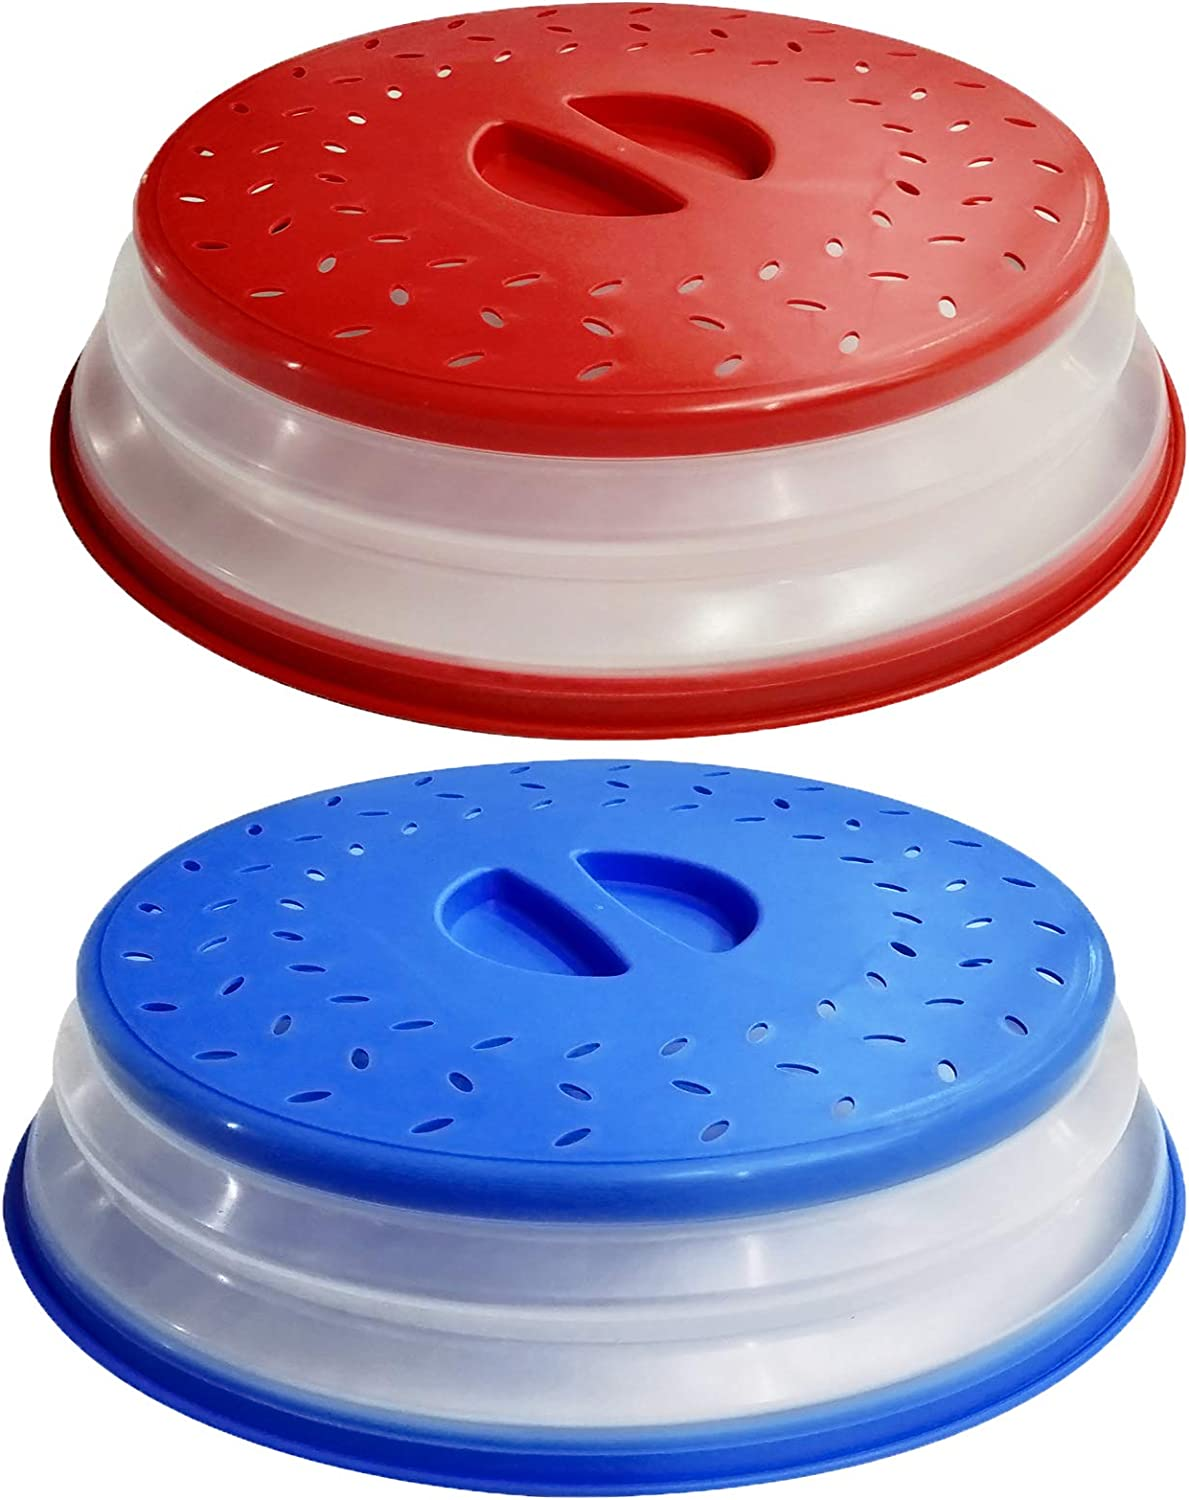 2Pcs OUZIFISH Upgraded Microwave Splatter Cover for Food, Vented Collapsible Food Plates Cover Can be Hung, Easy to Shake Hands, Drainer Basket, BPA-Free Silicone & Plastic